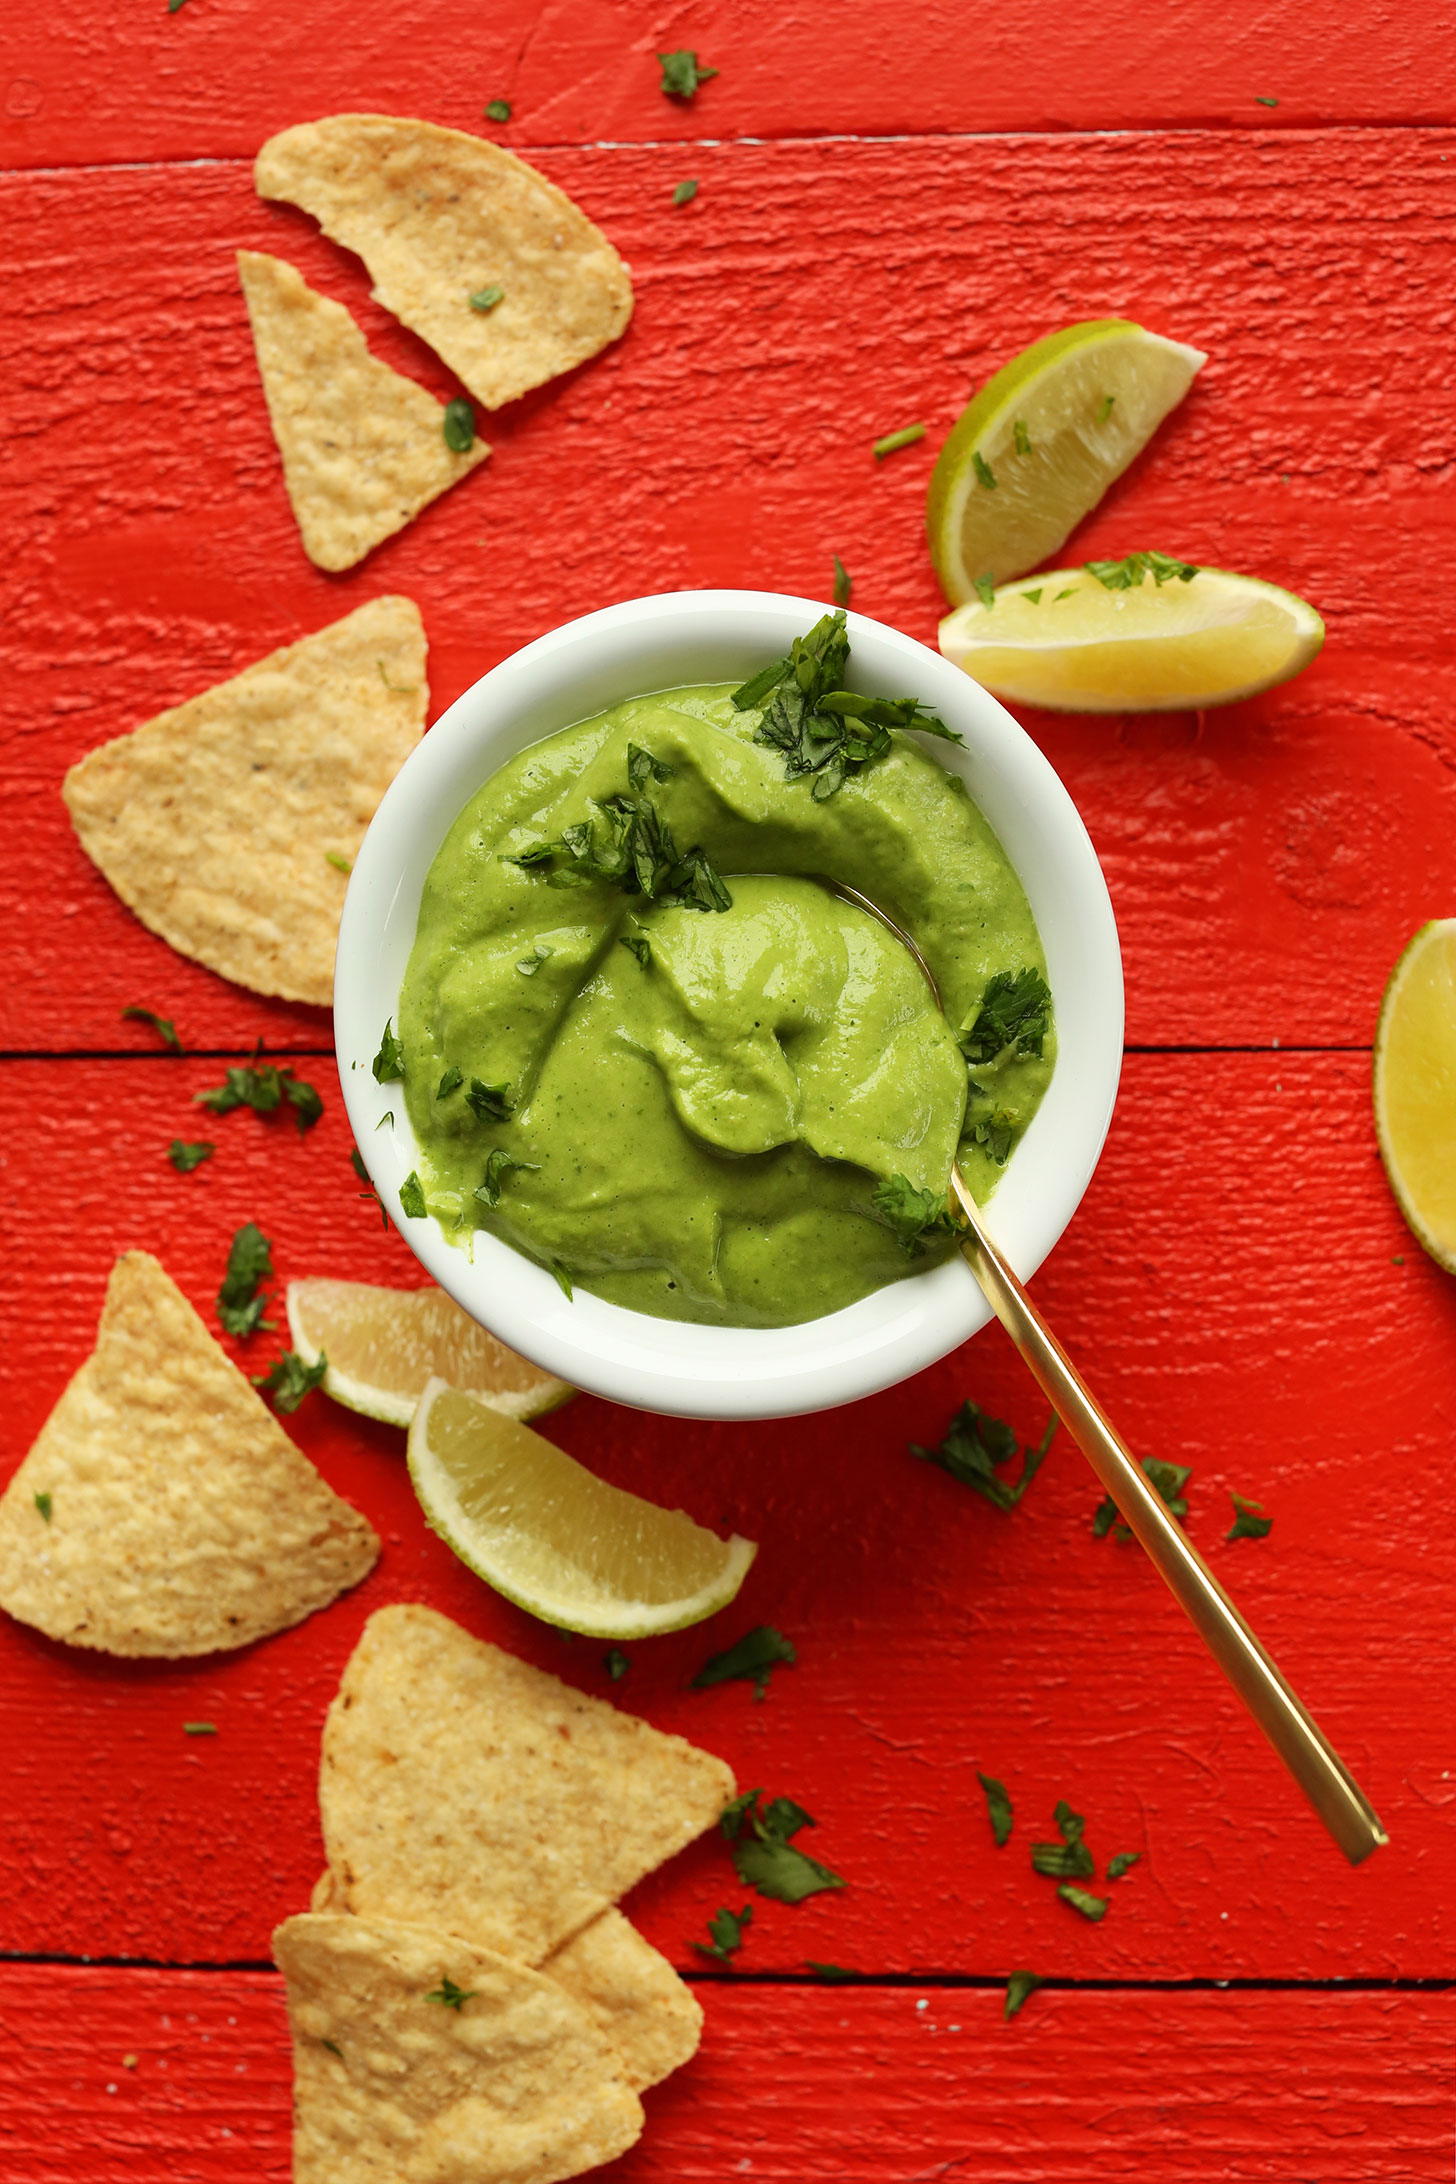 Bowl of our creamy avocado cilantro dressing surrounded by tortilla chips and limes